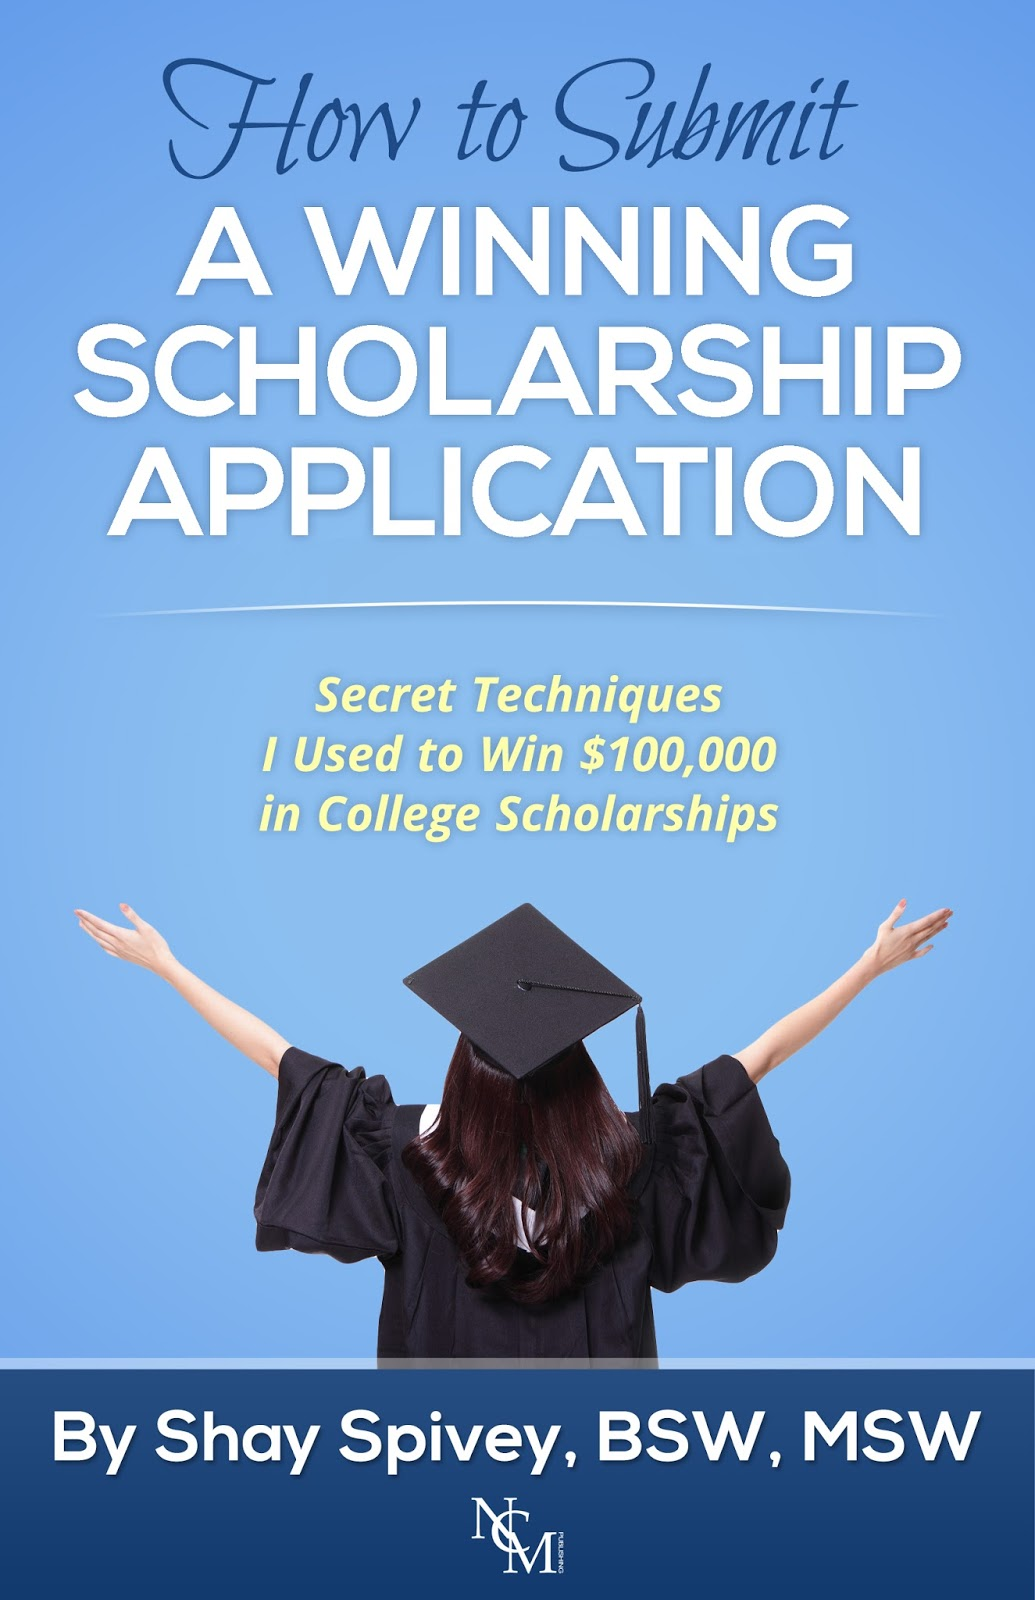 application for a scholarship